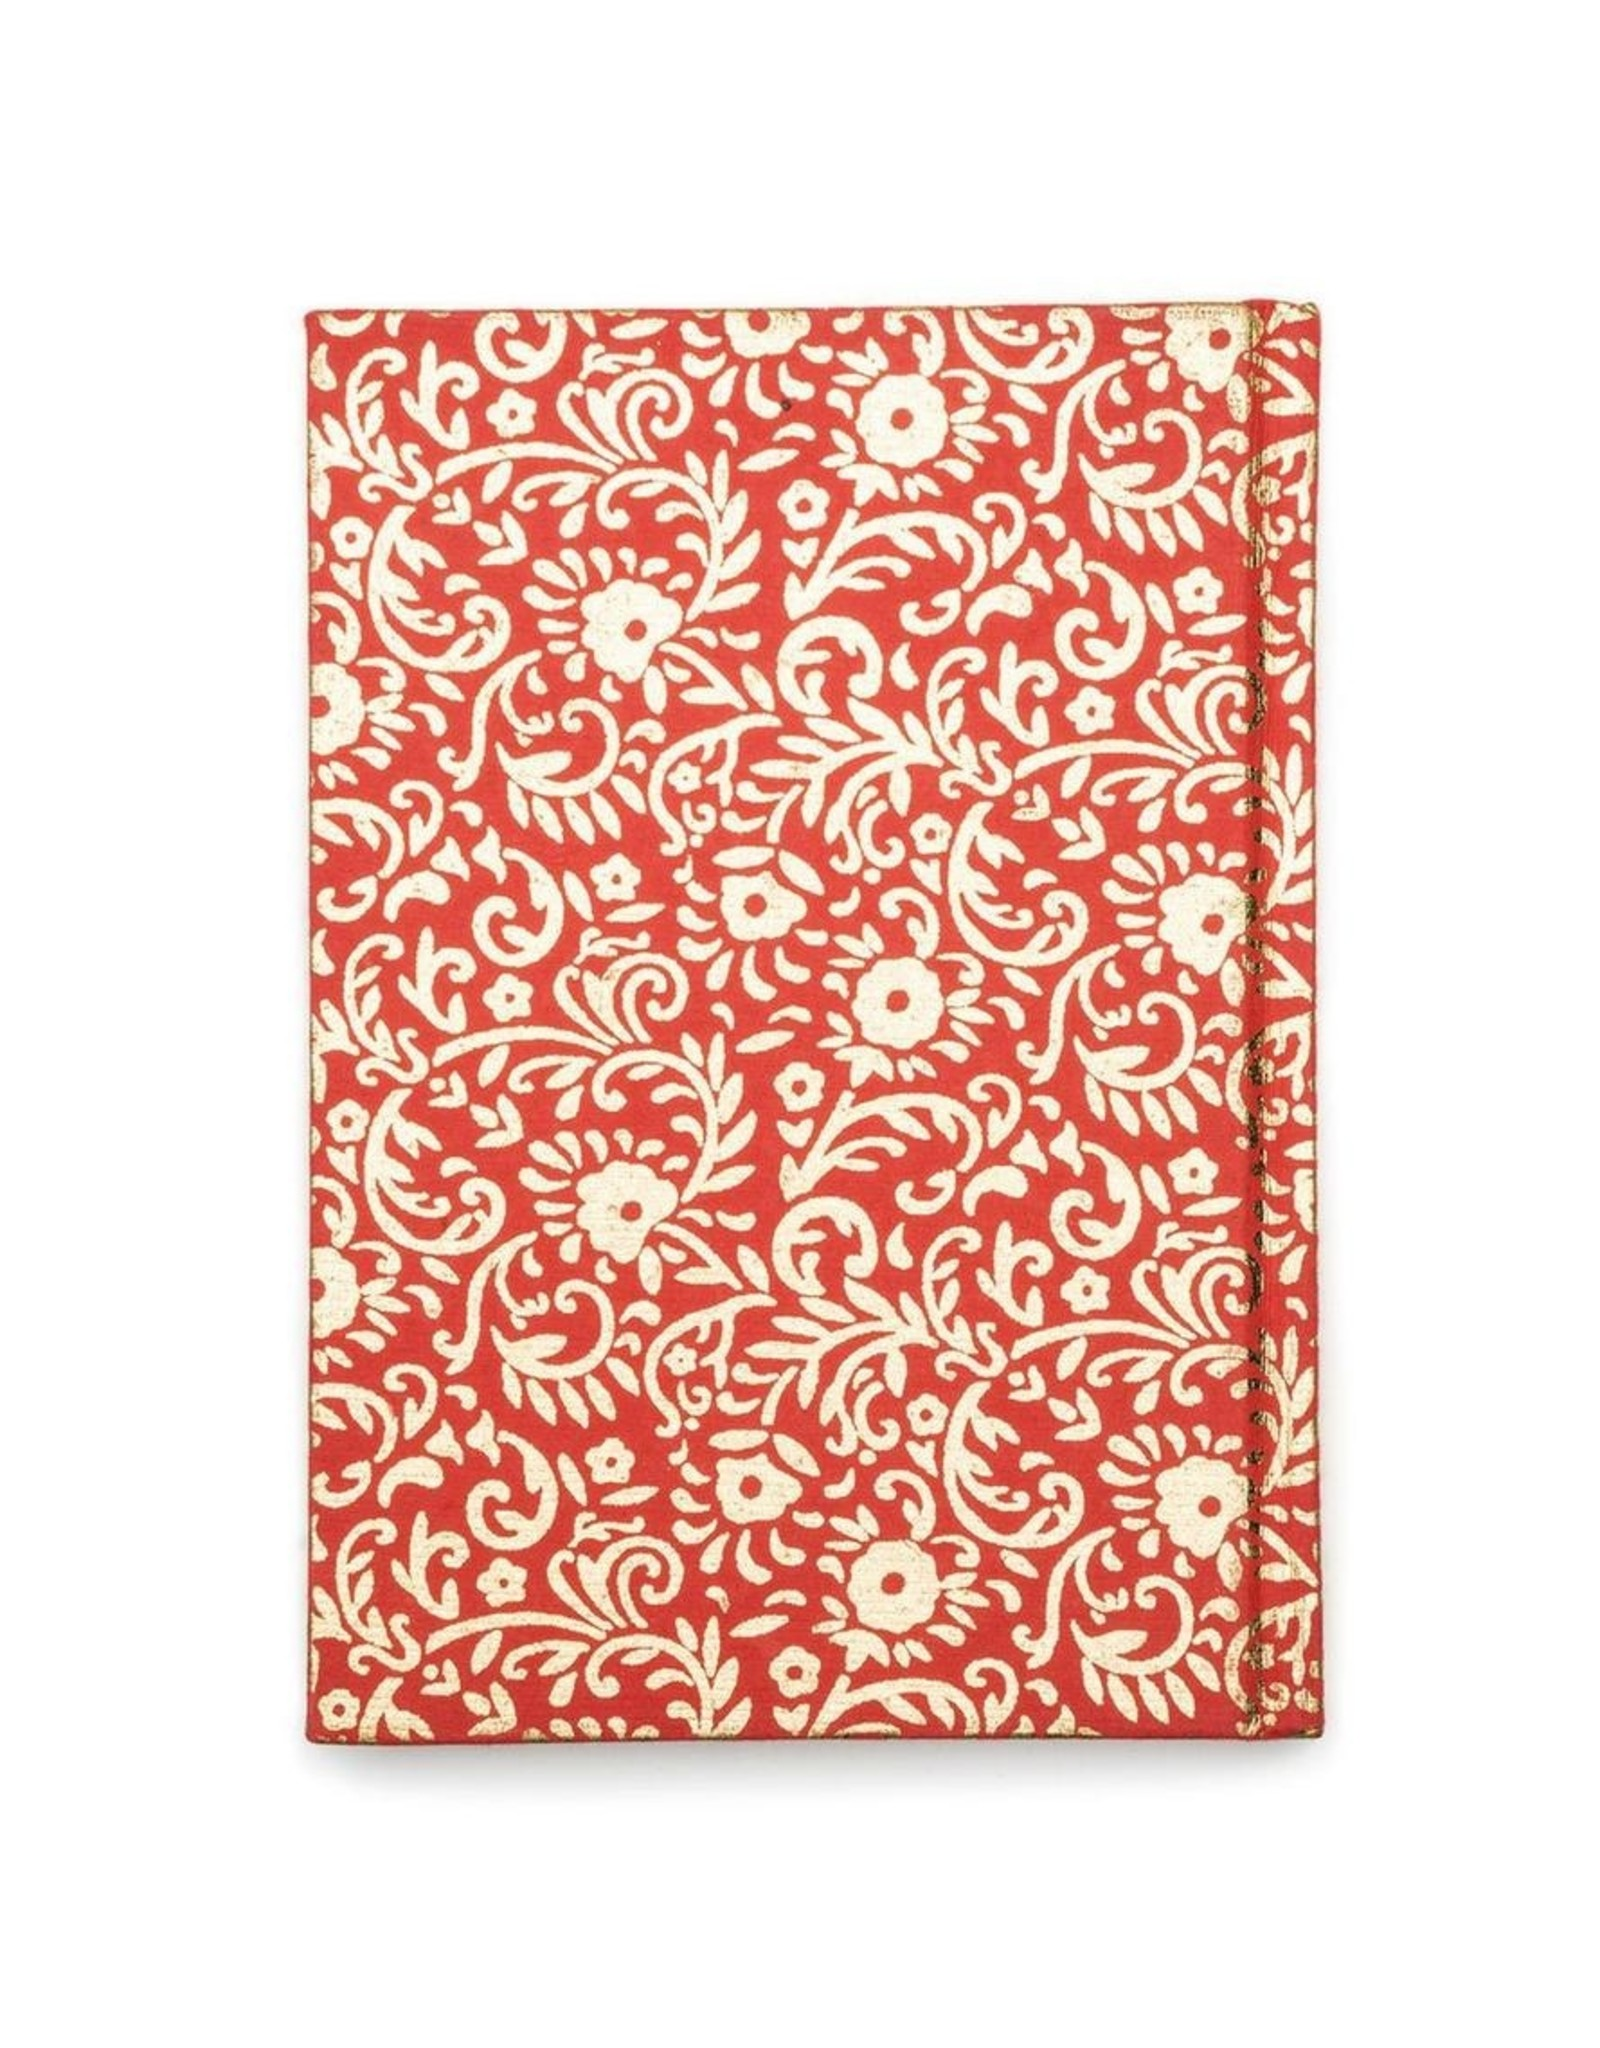 Matr Boomie Choose Joy Metallic Message Journal